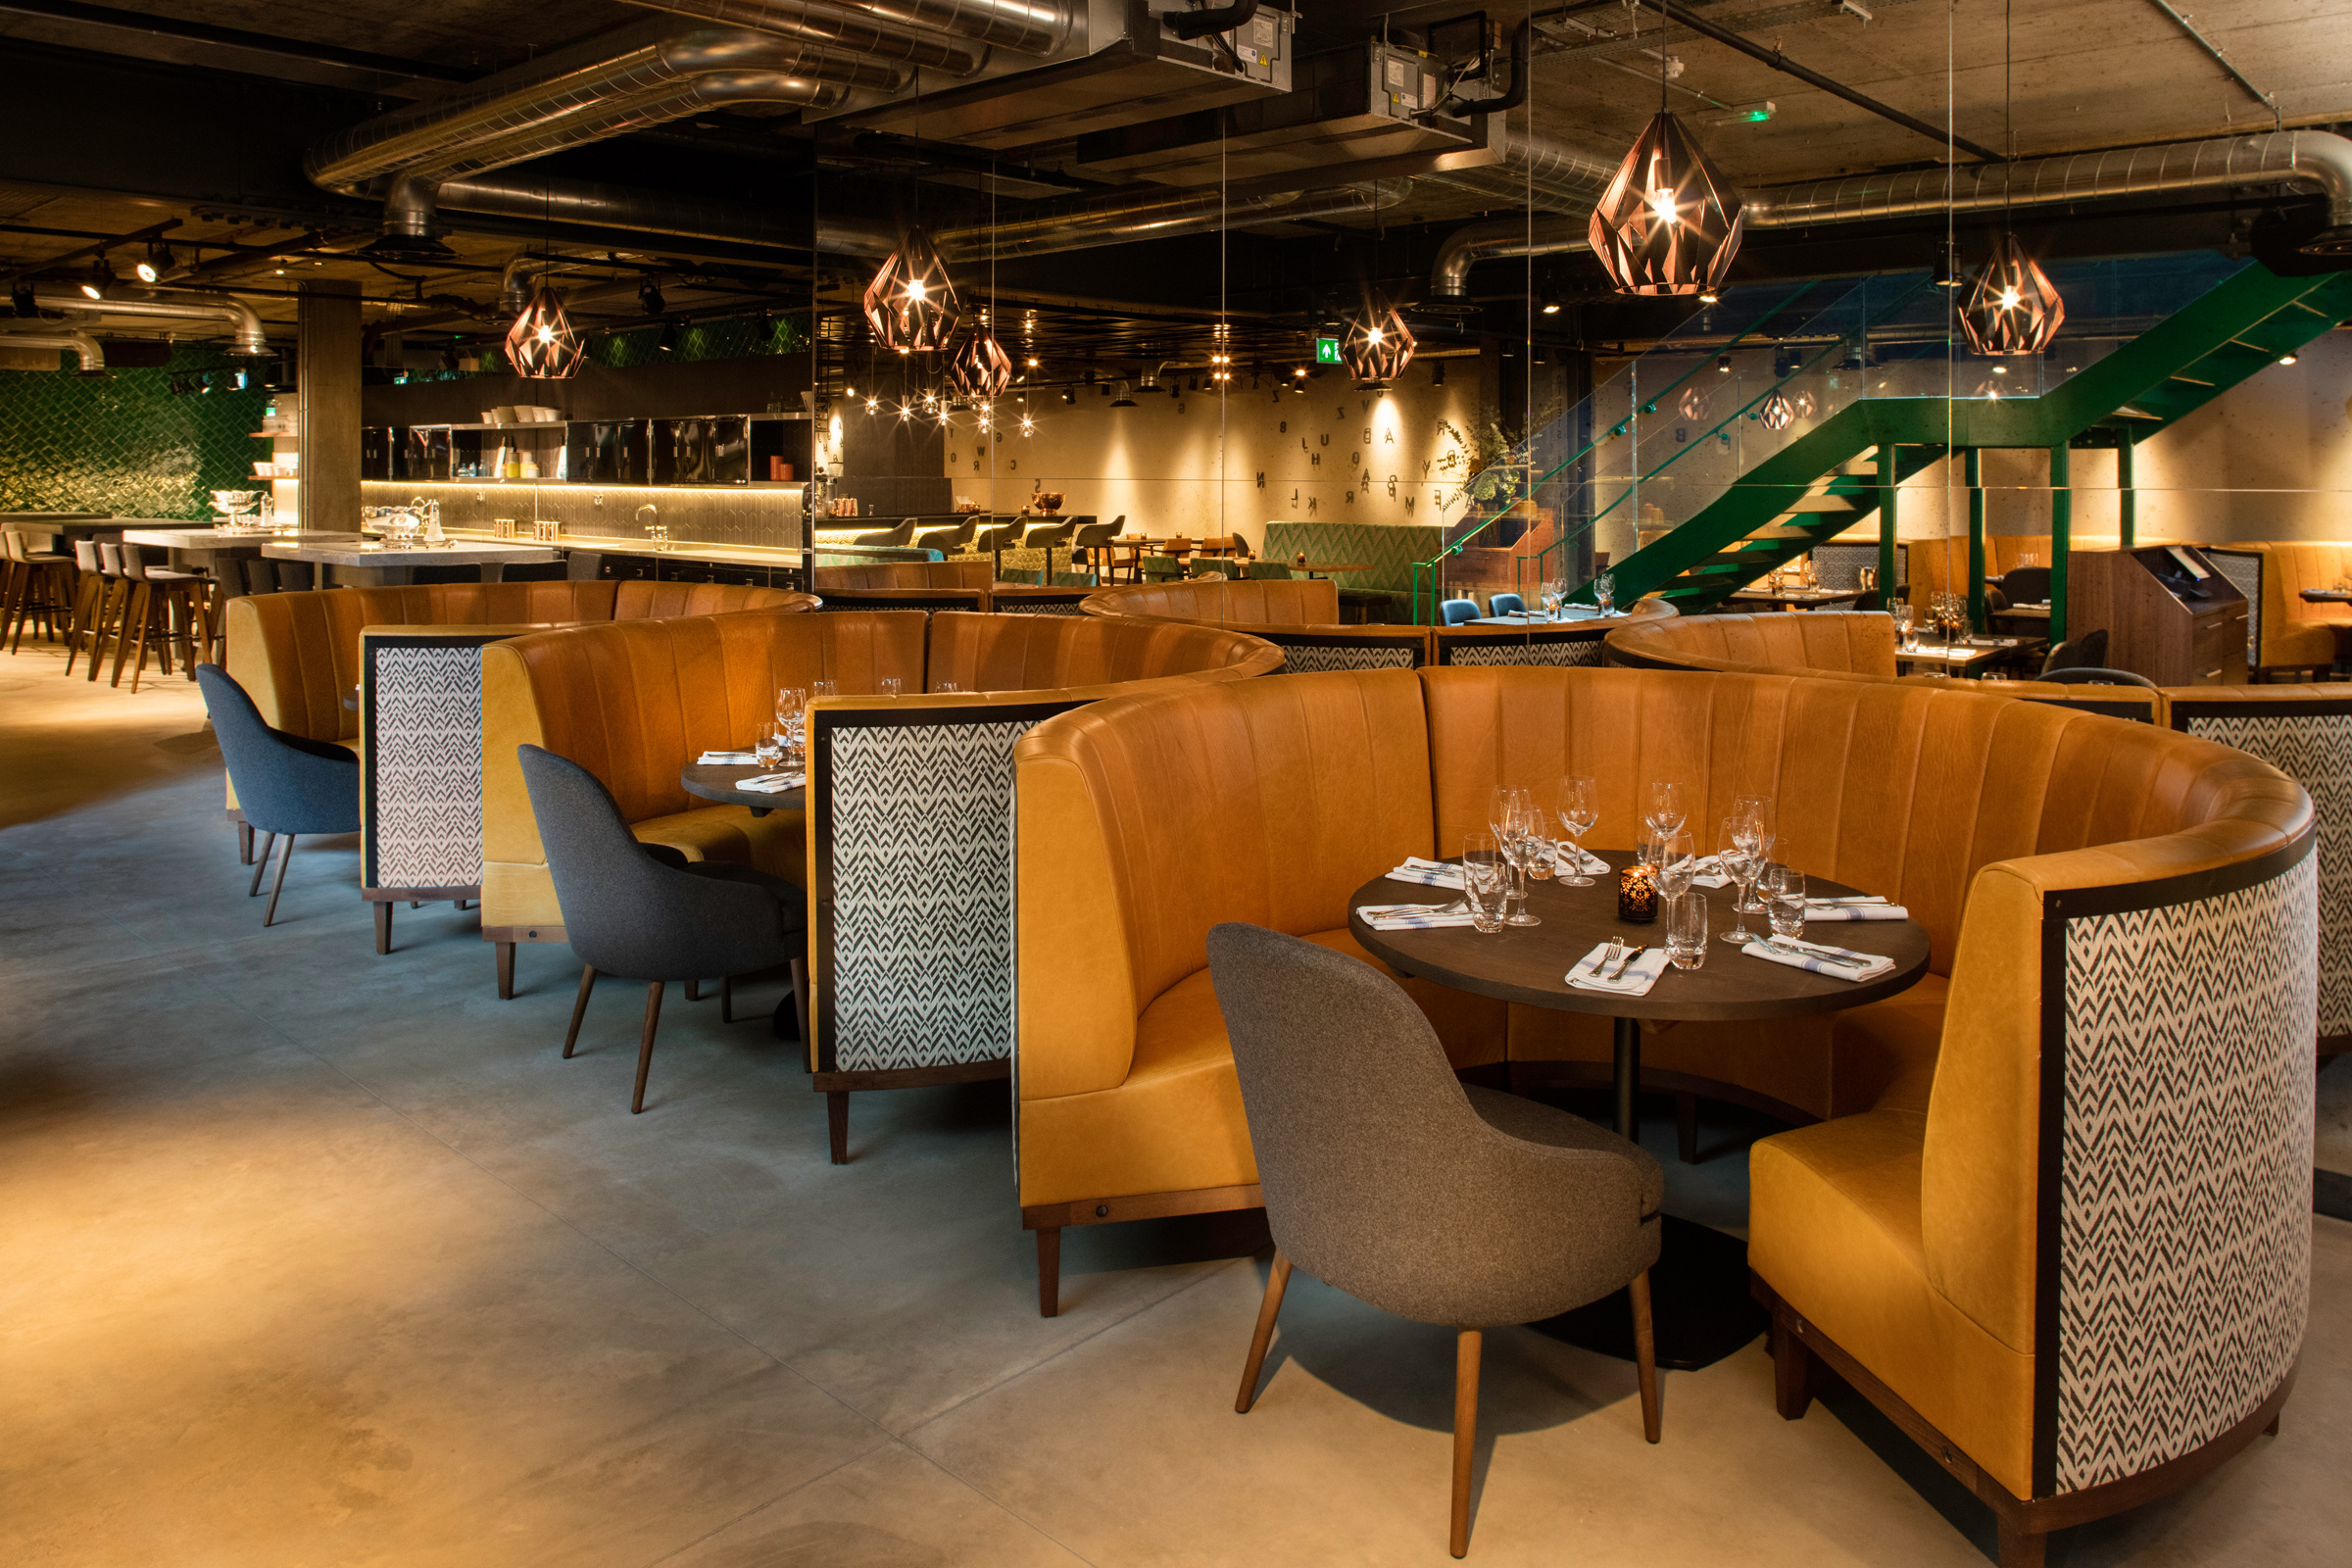 Drake Amp Morgan At Kings Cross Bespoke Restaurant Seating